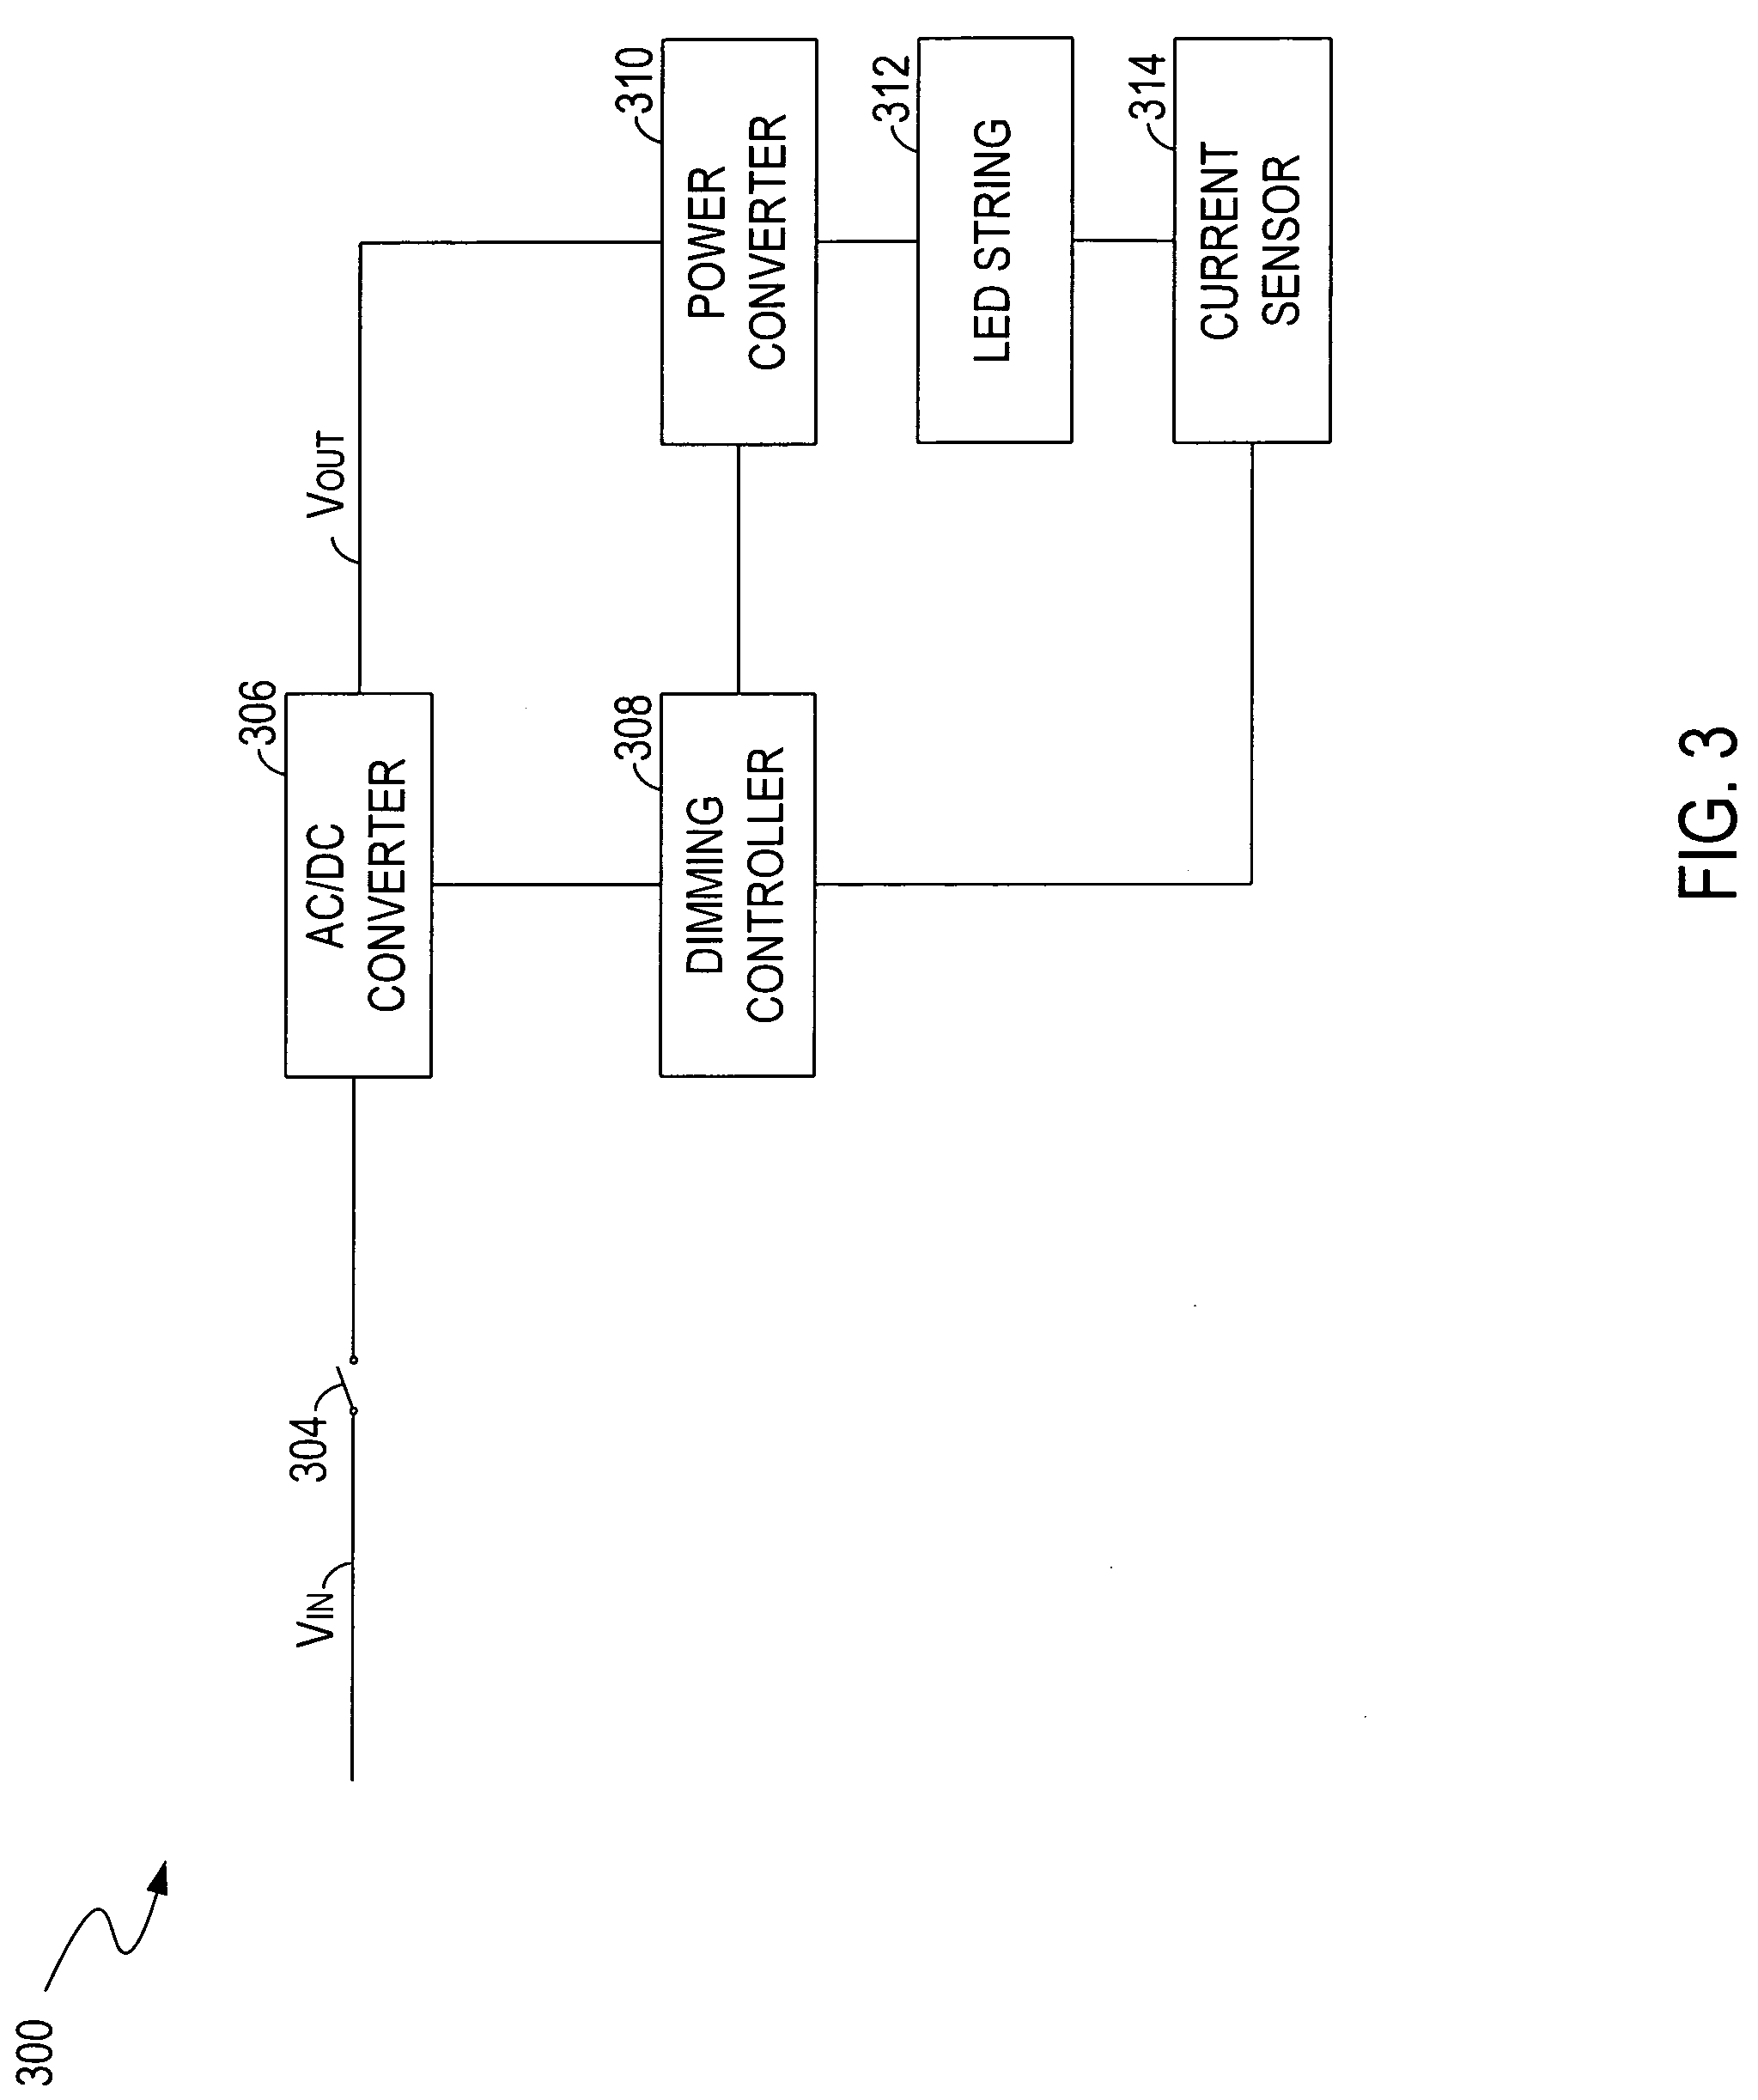 Patent Us8044608 Driving Circuit With Dimming Controller For Led Lights Using Analog Flipflop Diagram Drawing